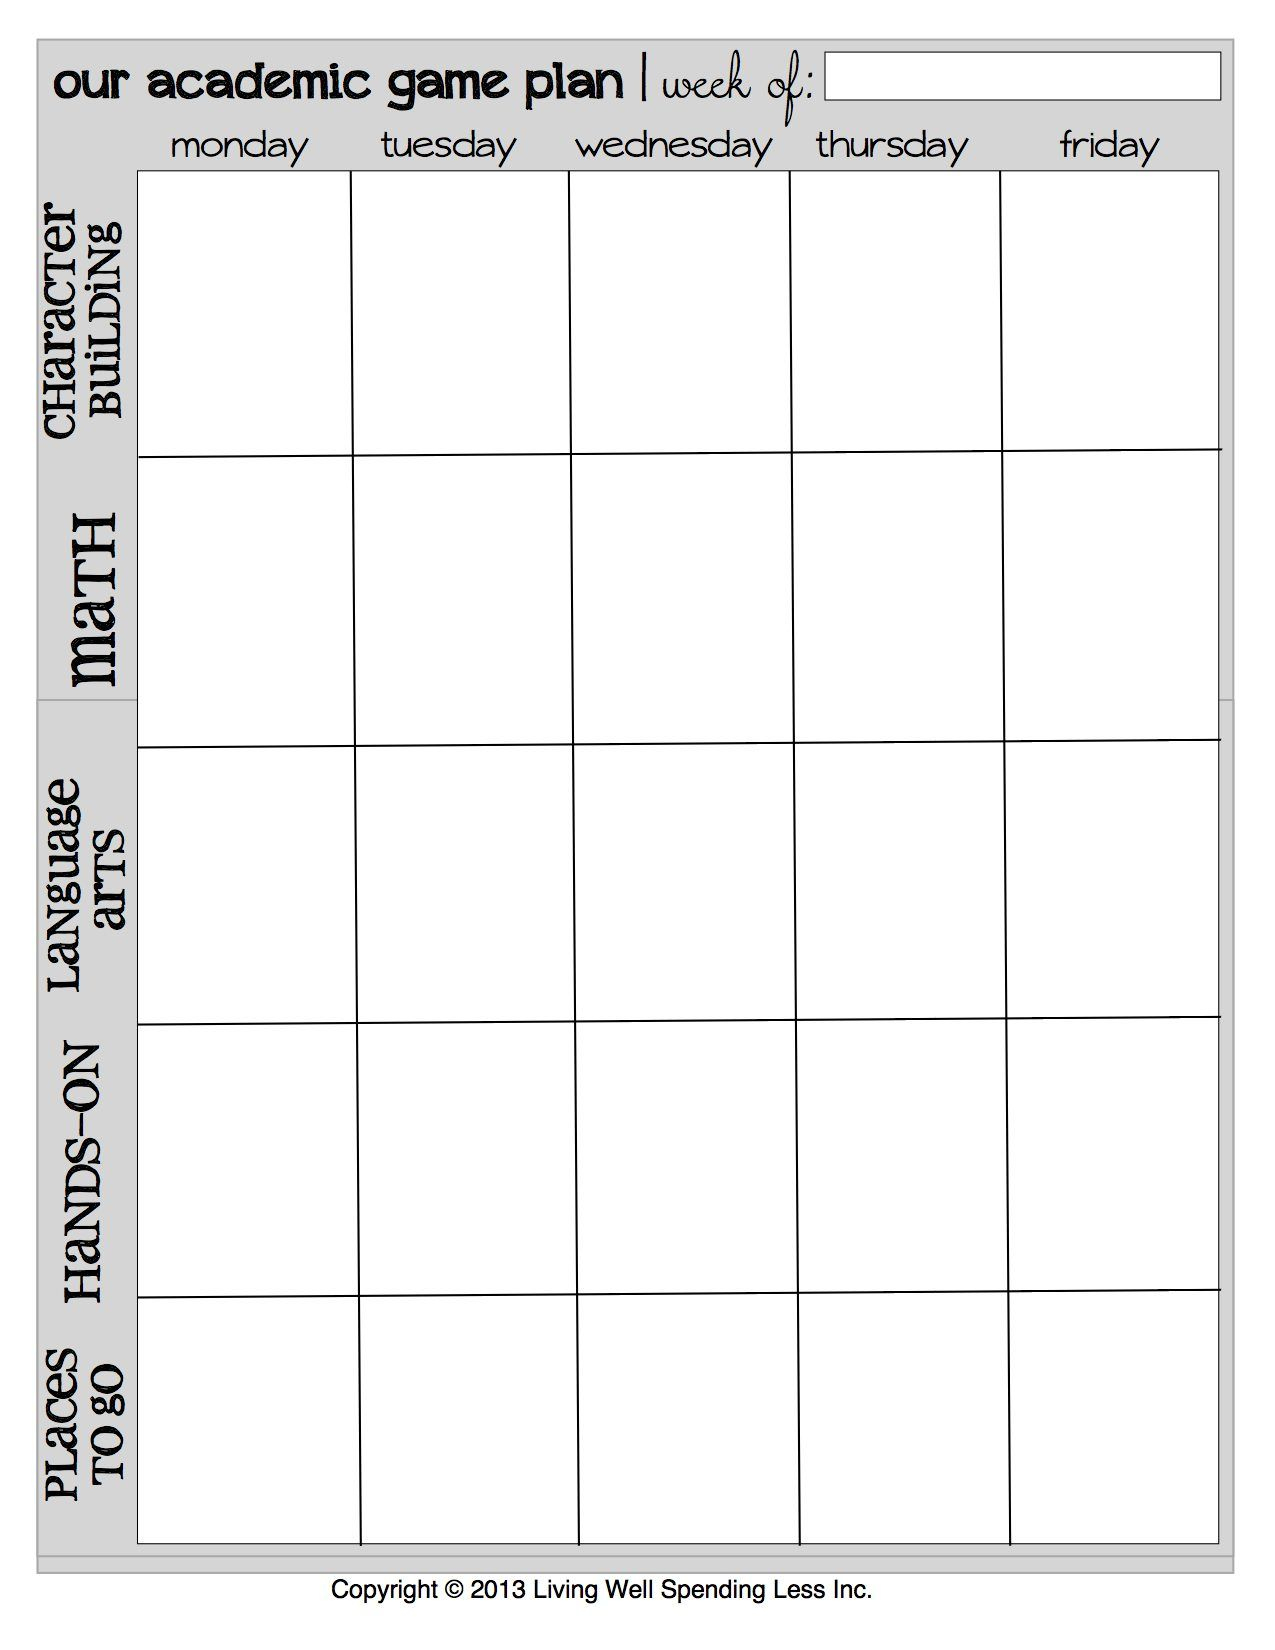 Free Printable Homeschool Weekly Academic Game Plan | Homeschool - Free Printable Academic Planner